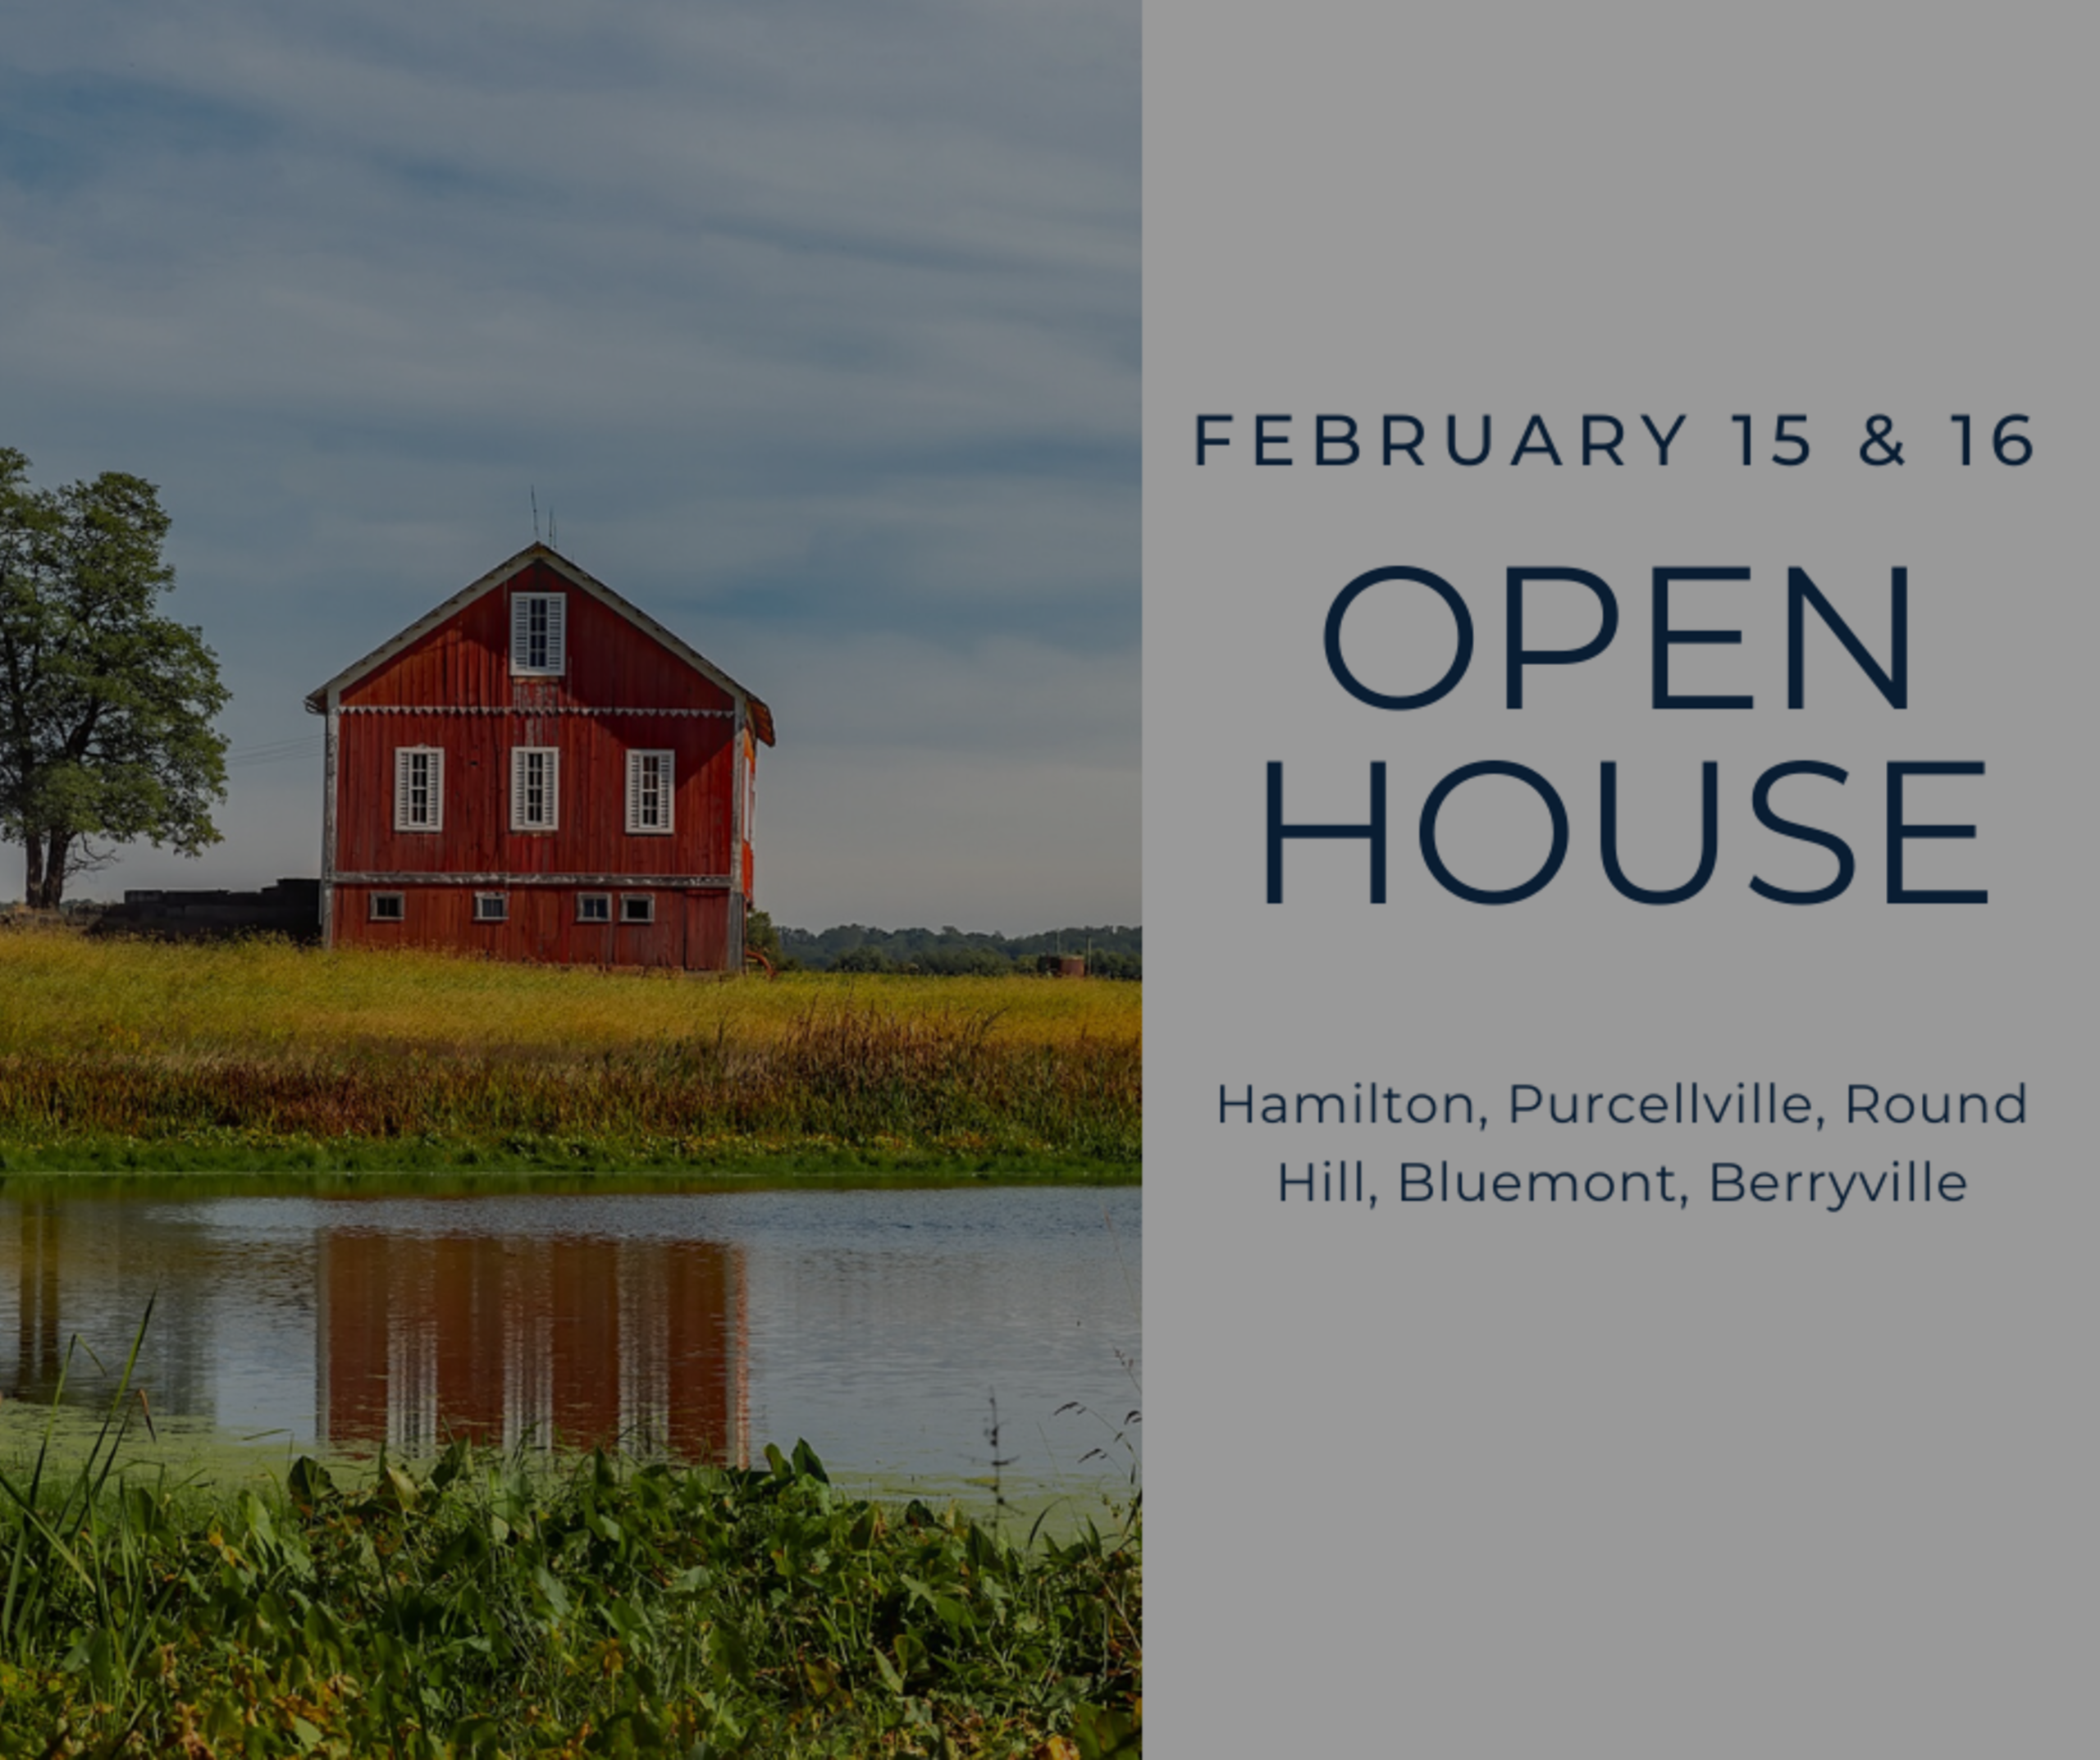 Open House List 2/15/20 – 1/16/20